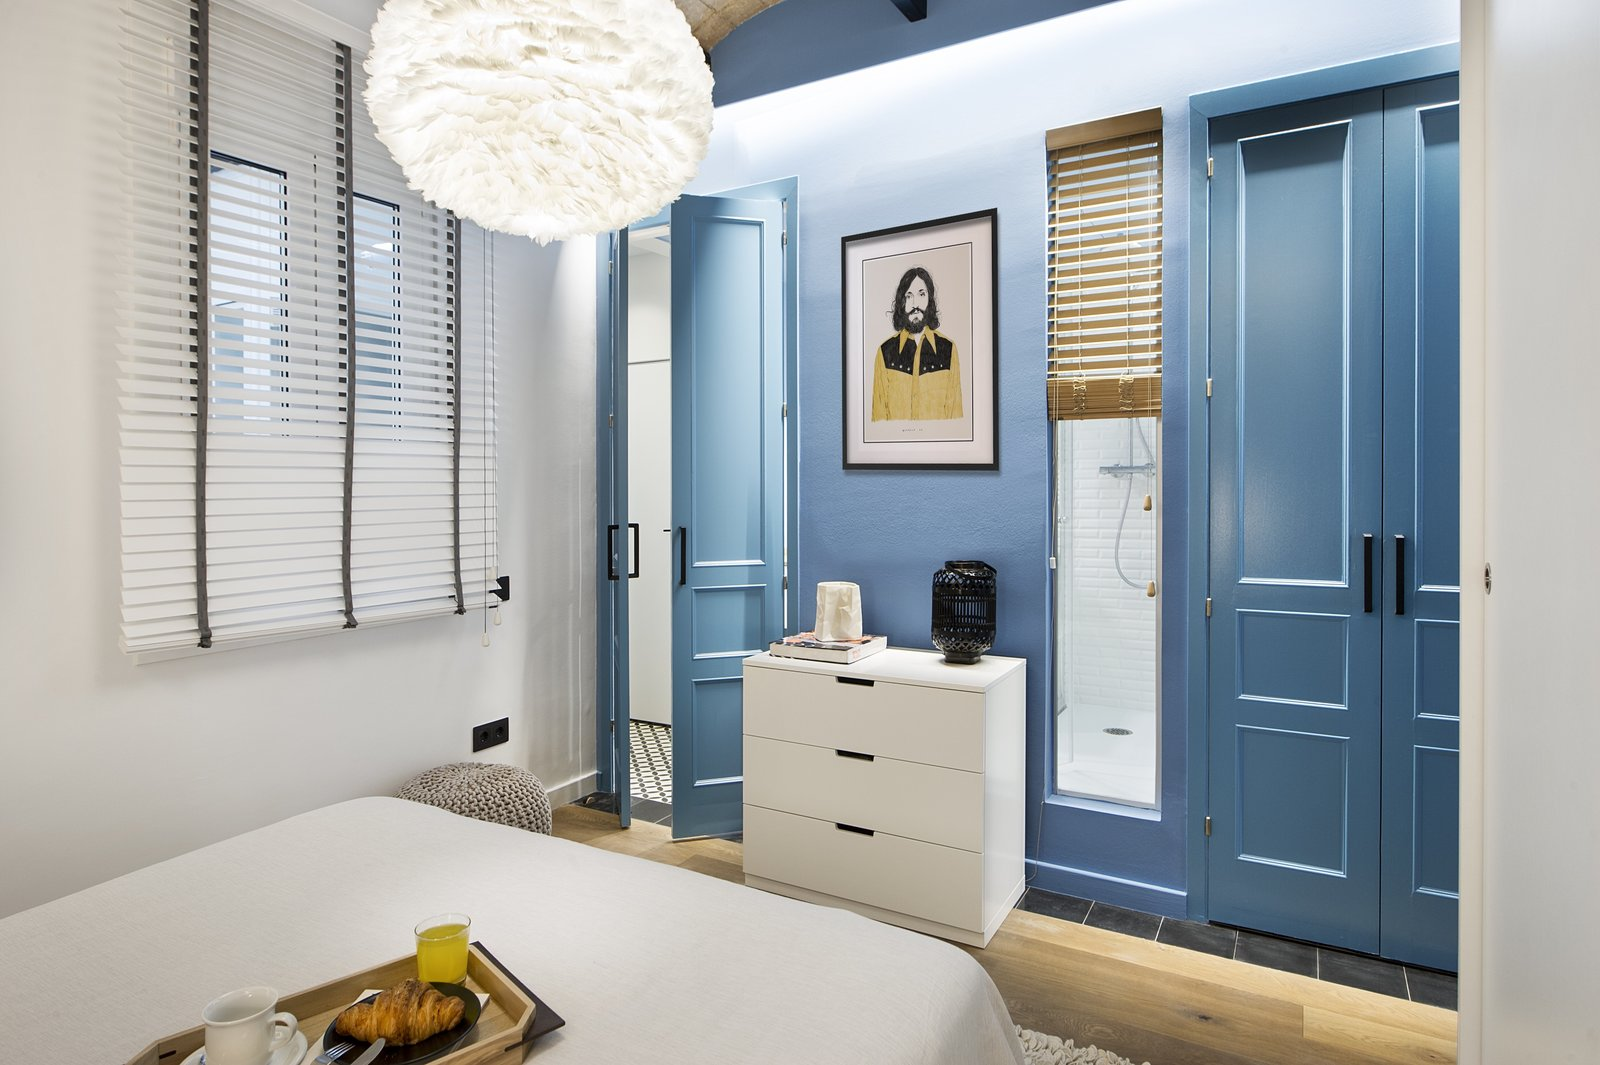 Bedroom, Dresser, Pendant Lighting, Light Hardwood Floor, and Bed  Urban Beach Home from A Smart Layout Maximizes Space in This Compact Urban Beach Apartment in Barcelona